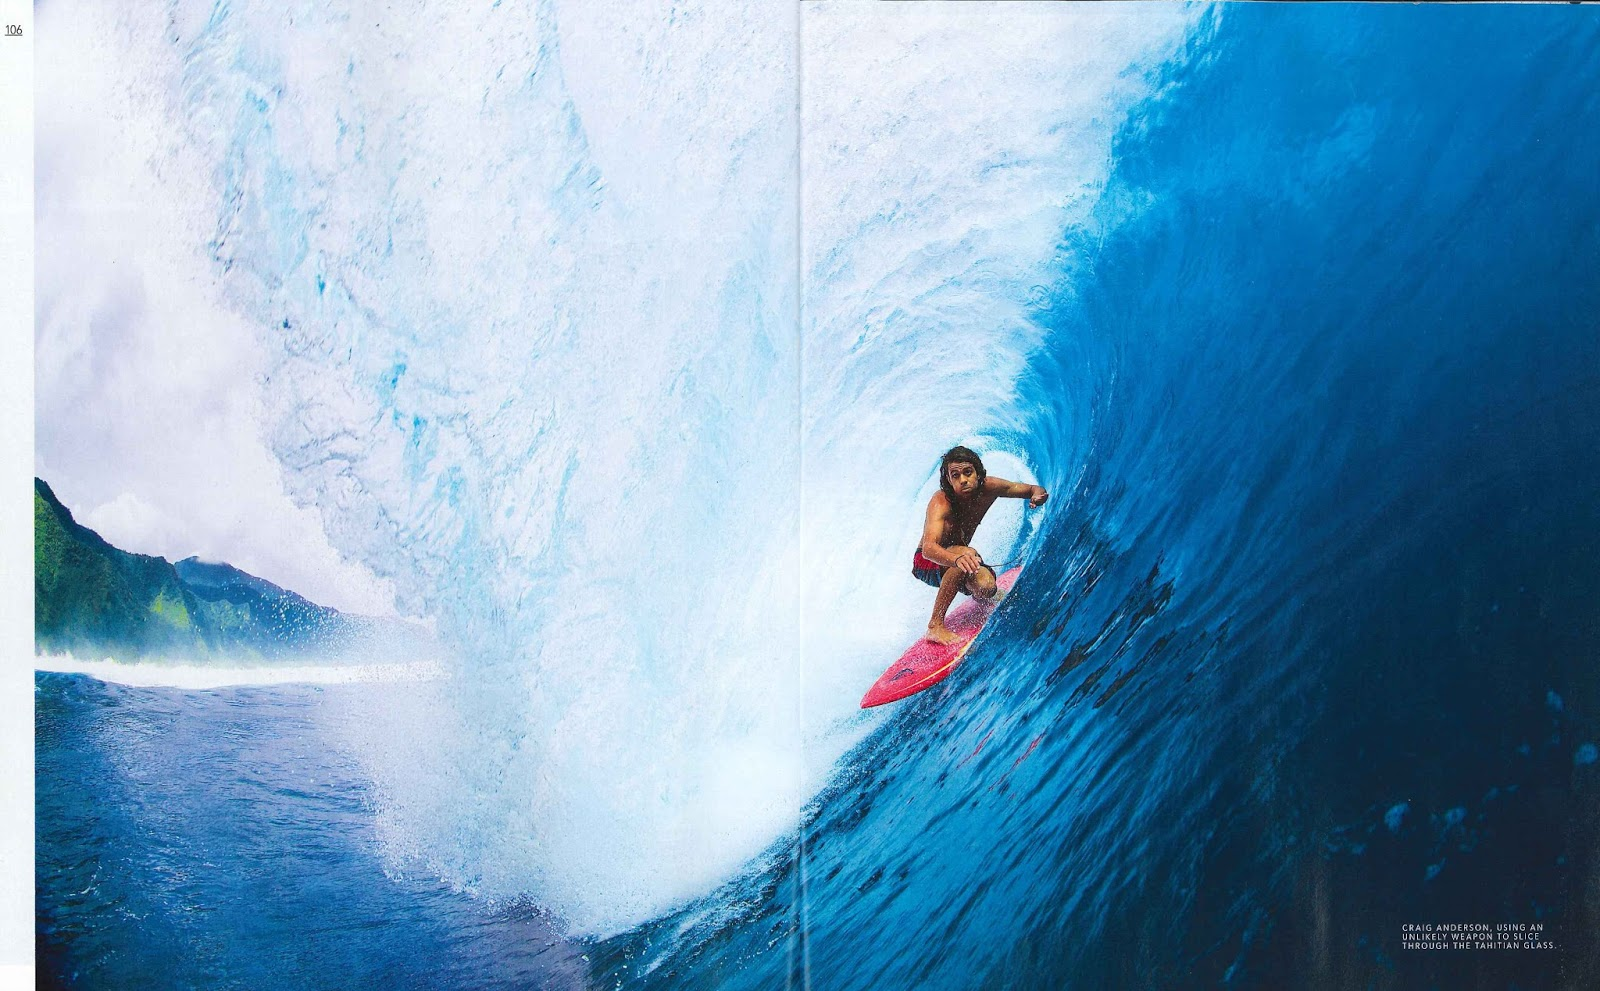 Quiksilver Pr Craig Anderson Featured On The Cover Of